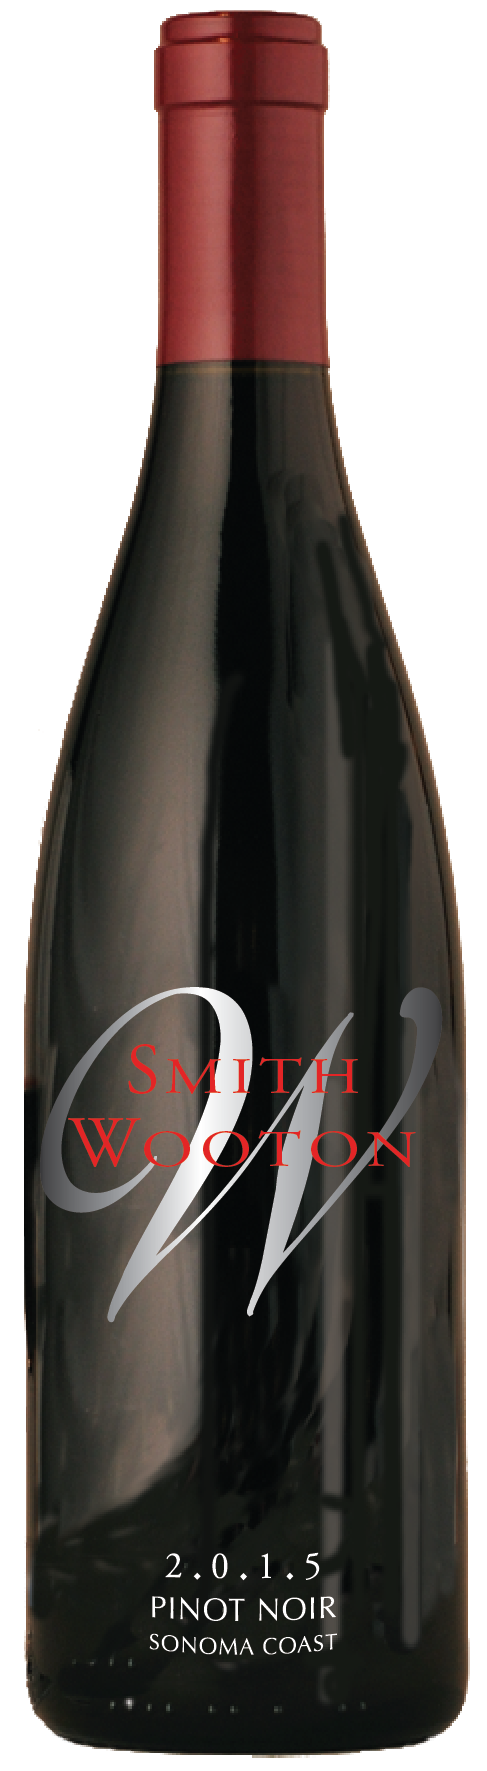 2015 Smith Wooton Pinot Noir, Sonoma Coast Product Image